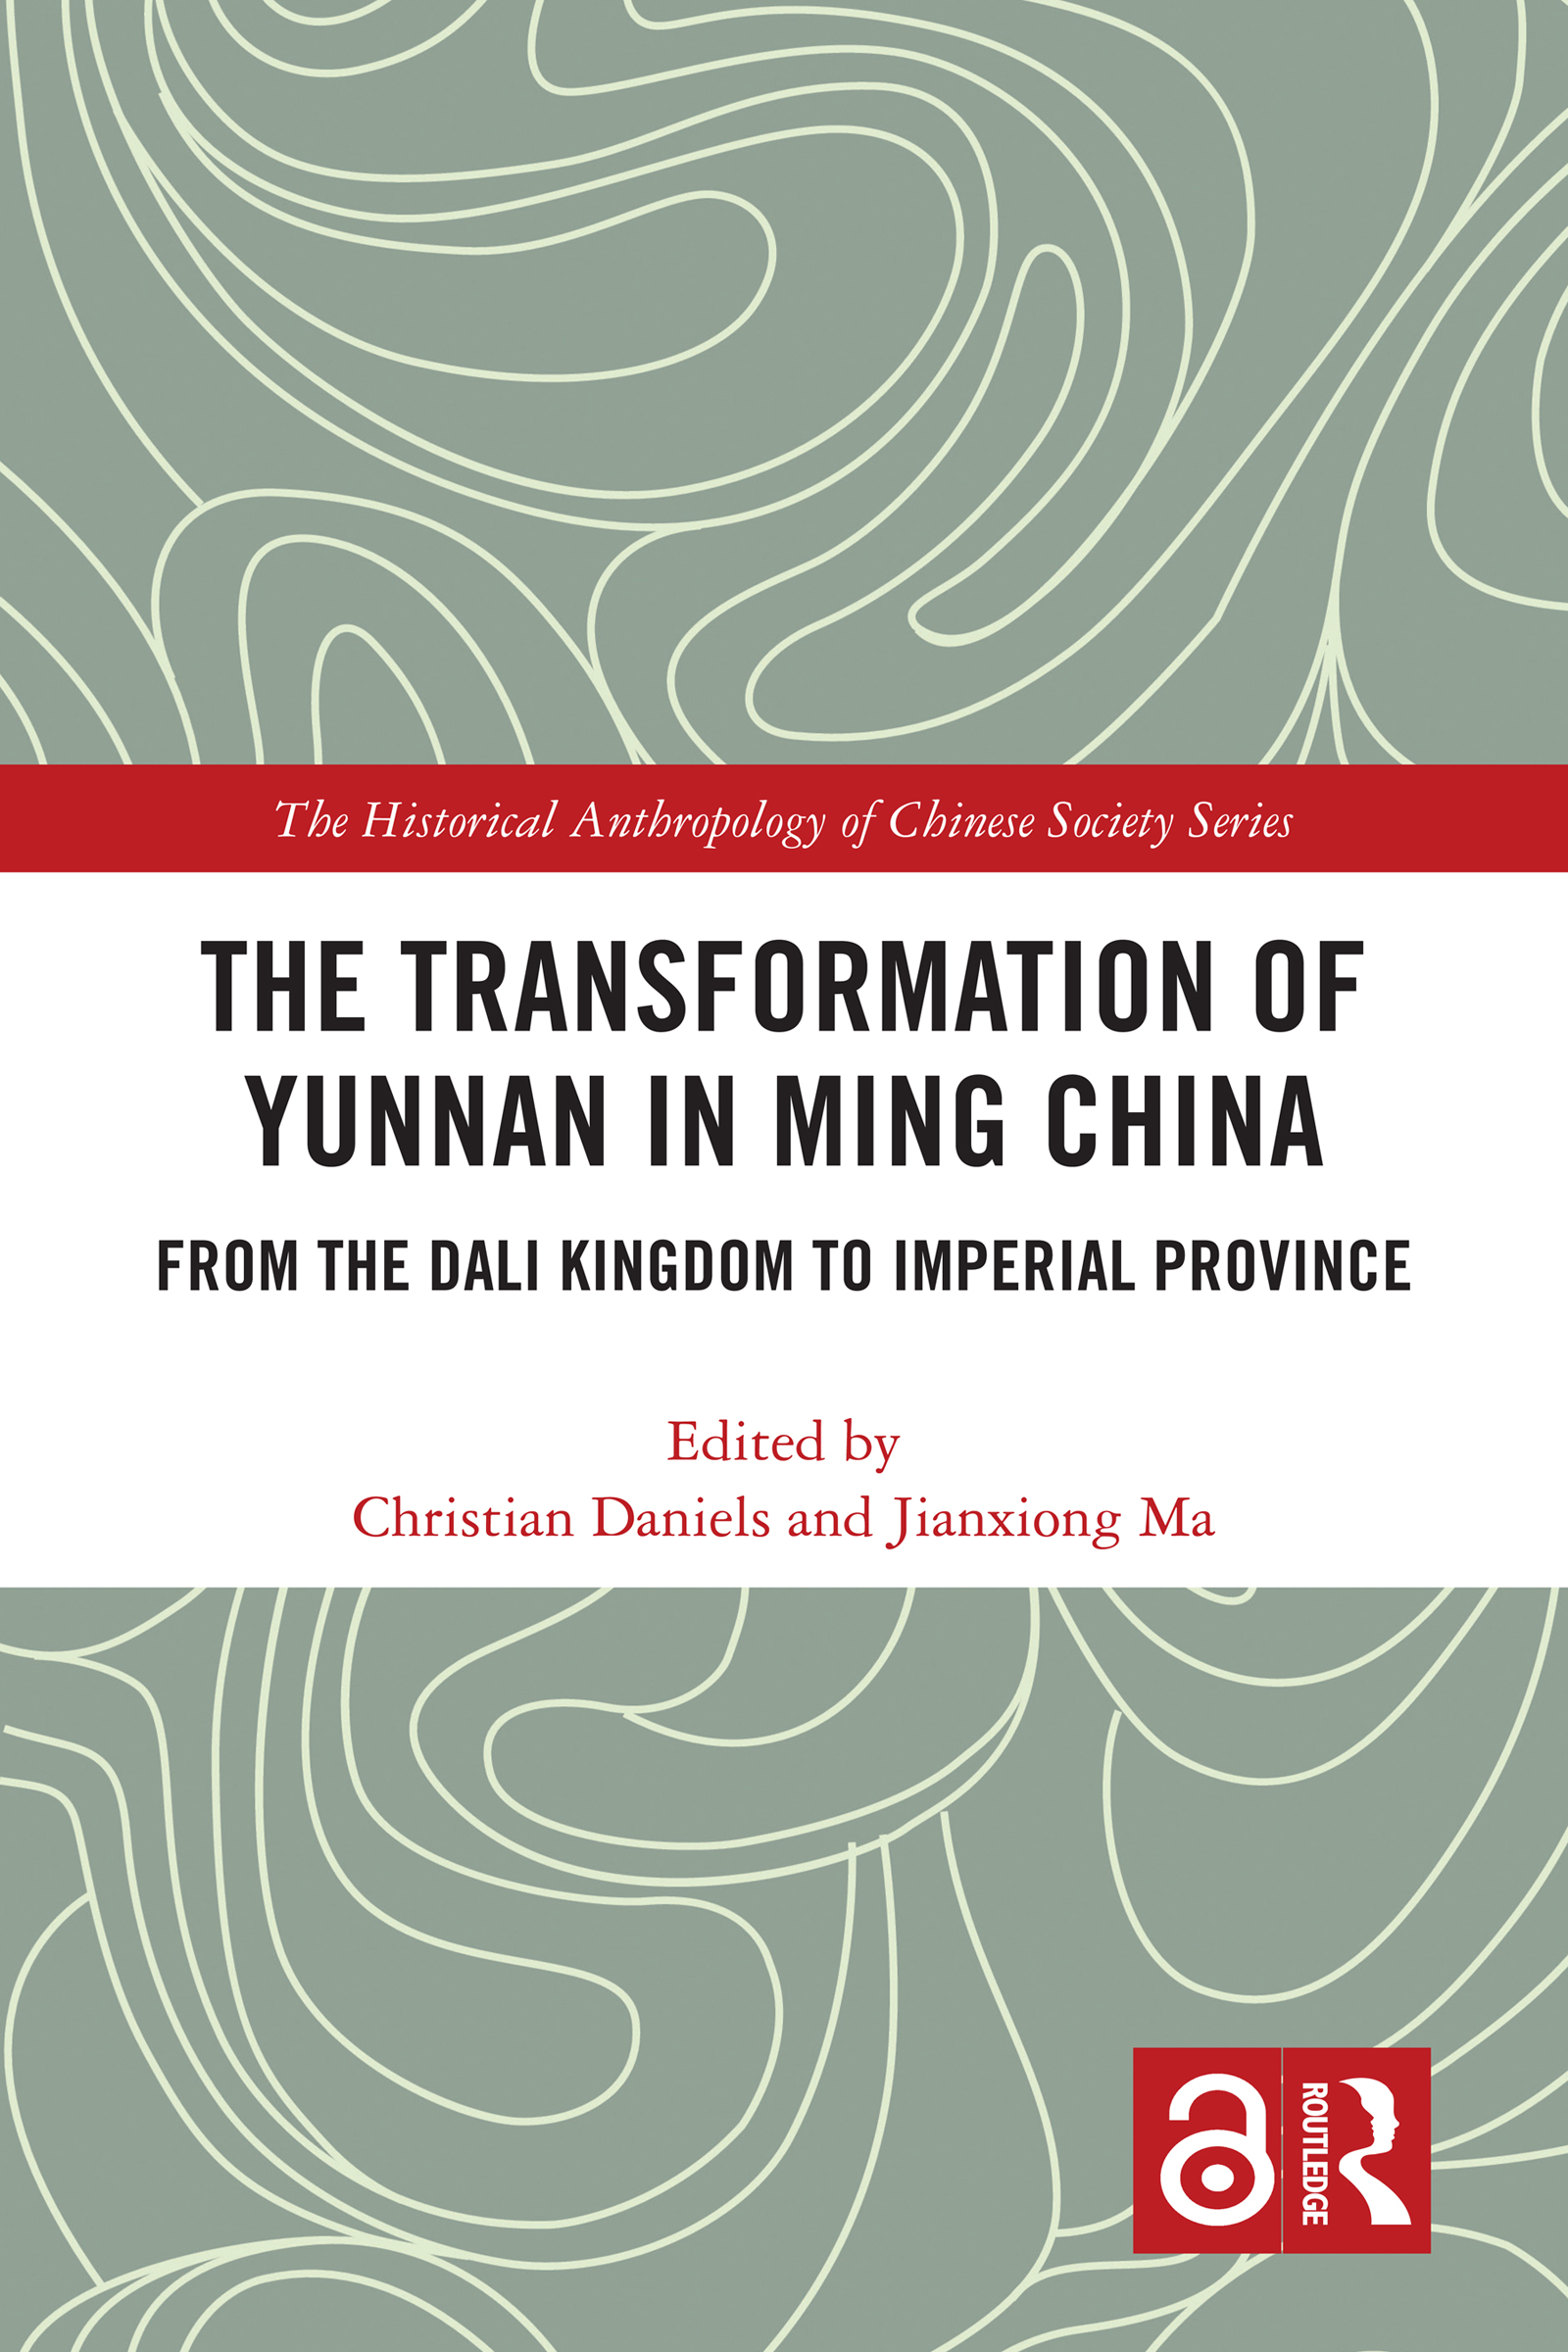 The Transformation of Yunnan in Ming China: From the Dali Kingdom to Imperial Province book cover